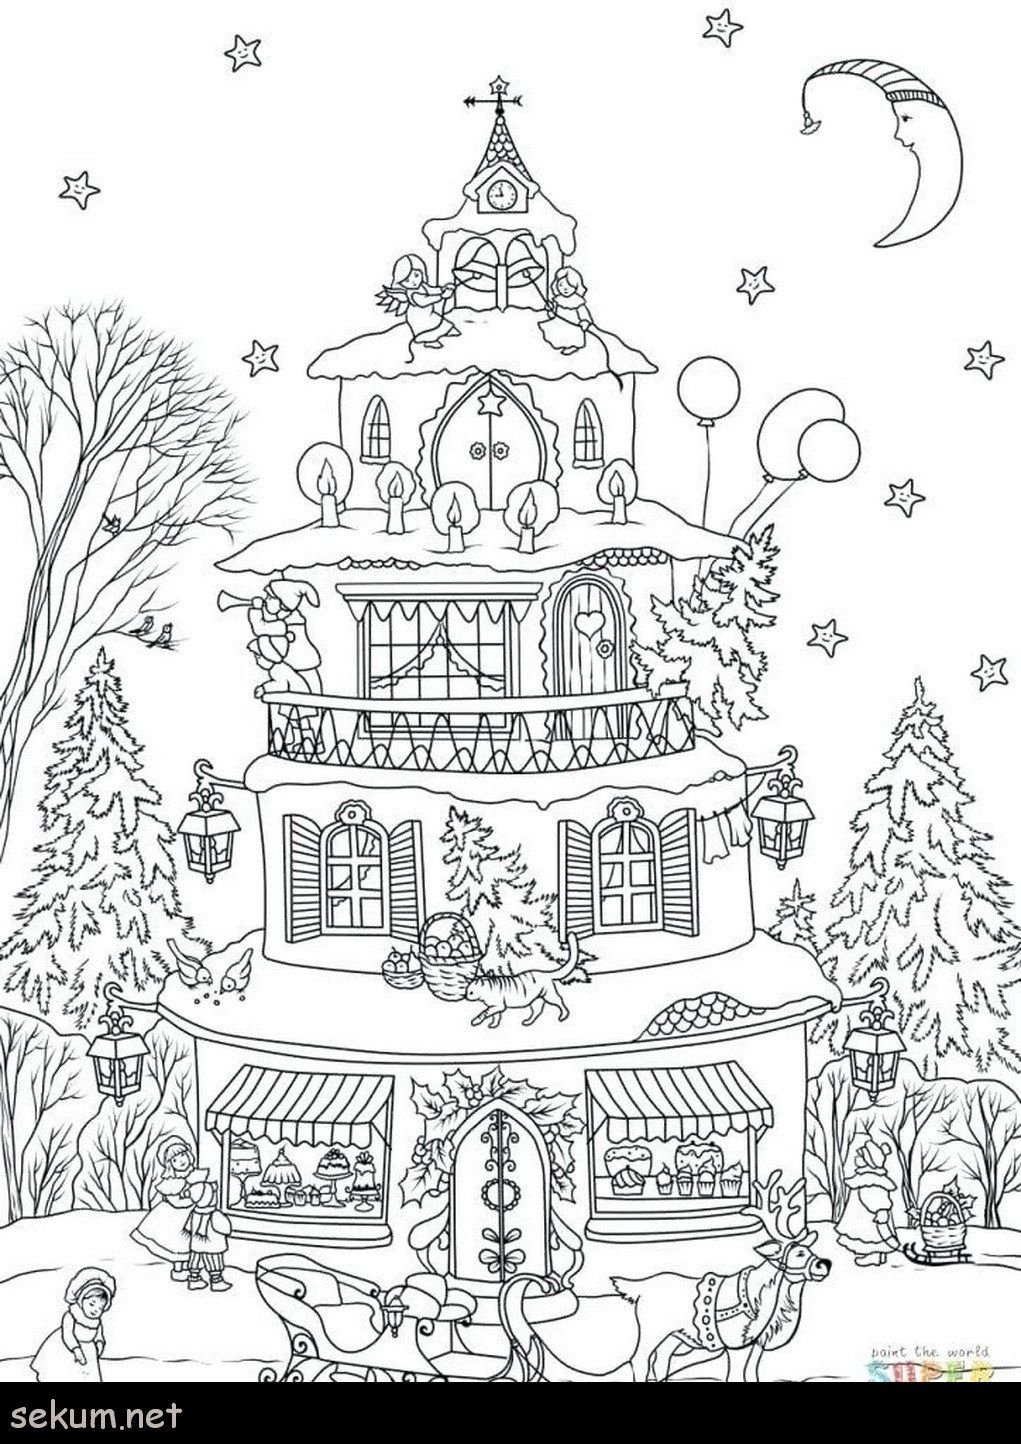 Gingerbread House Coloring Page Lovely Coloring Tremendous Gingerbread House Colori House Colouring Pages Christmas Coloring Books Christmas Tree Coloring Page